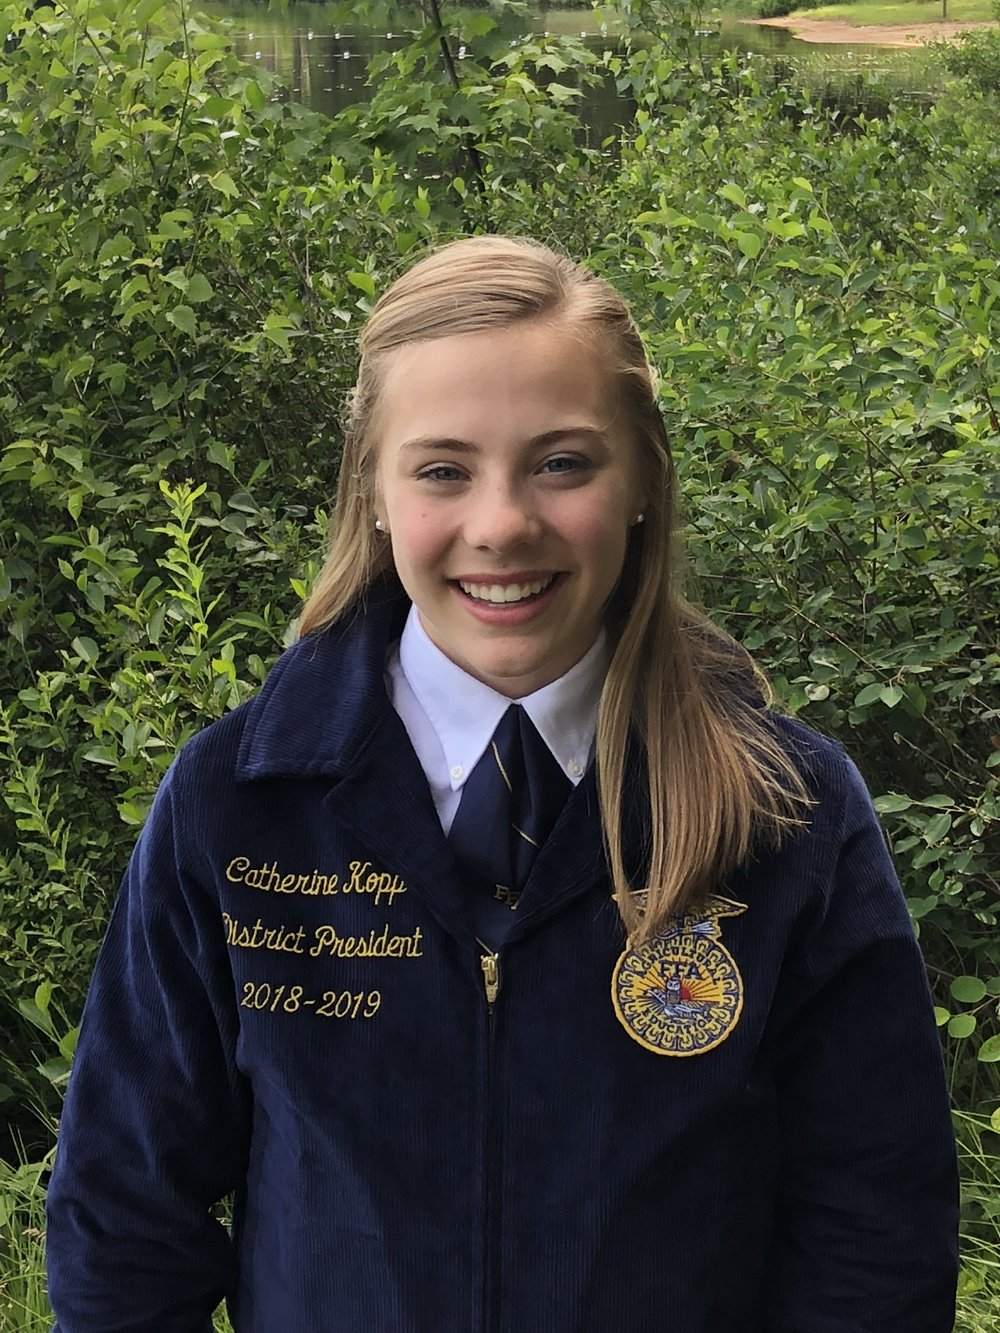 CATHERINE KOPP DISTRICT 7 PRESIDENT SOUTHERN CAYUGA FFA